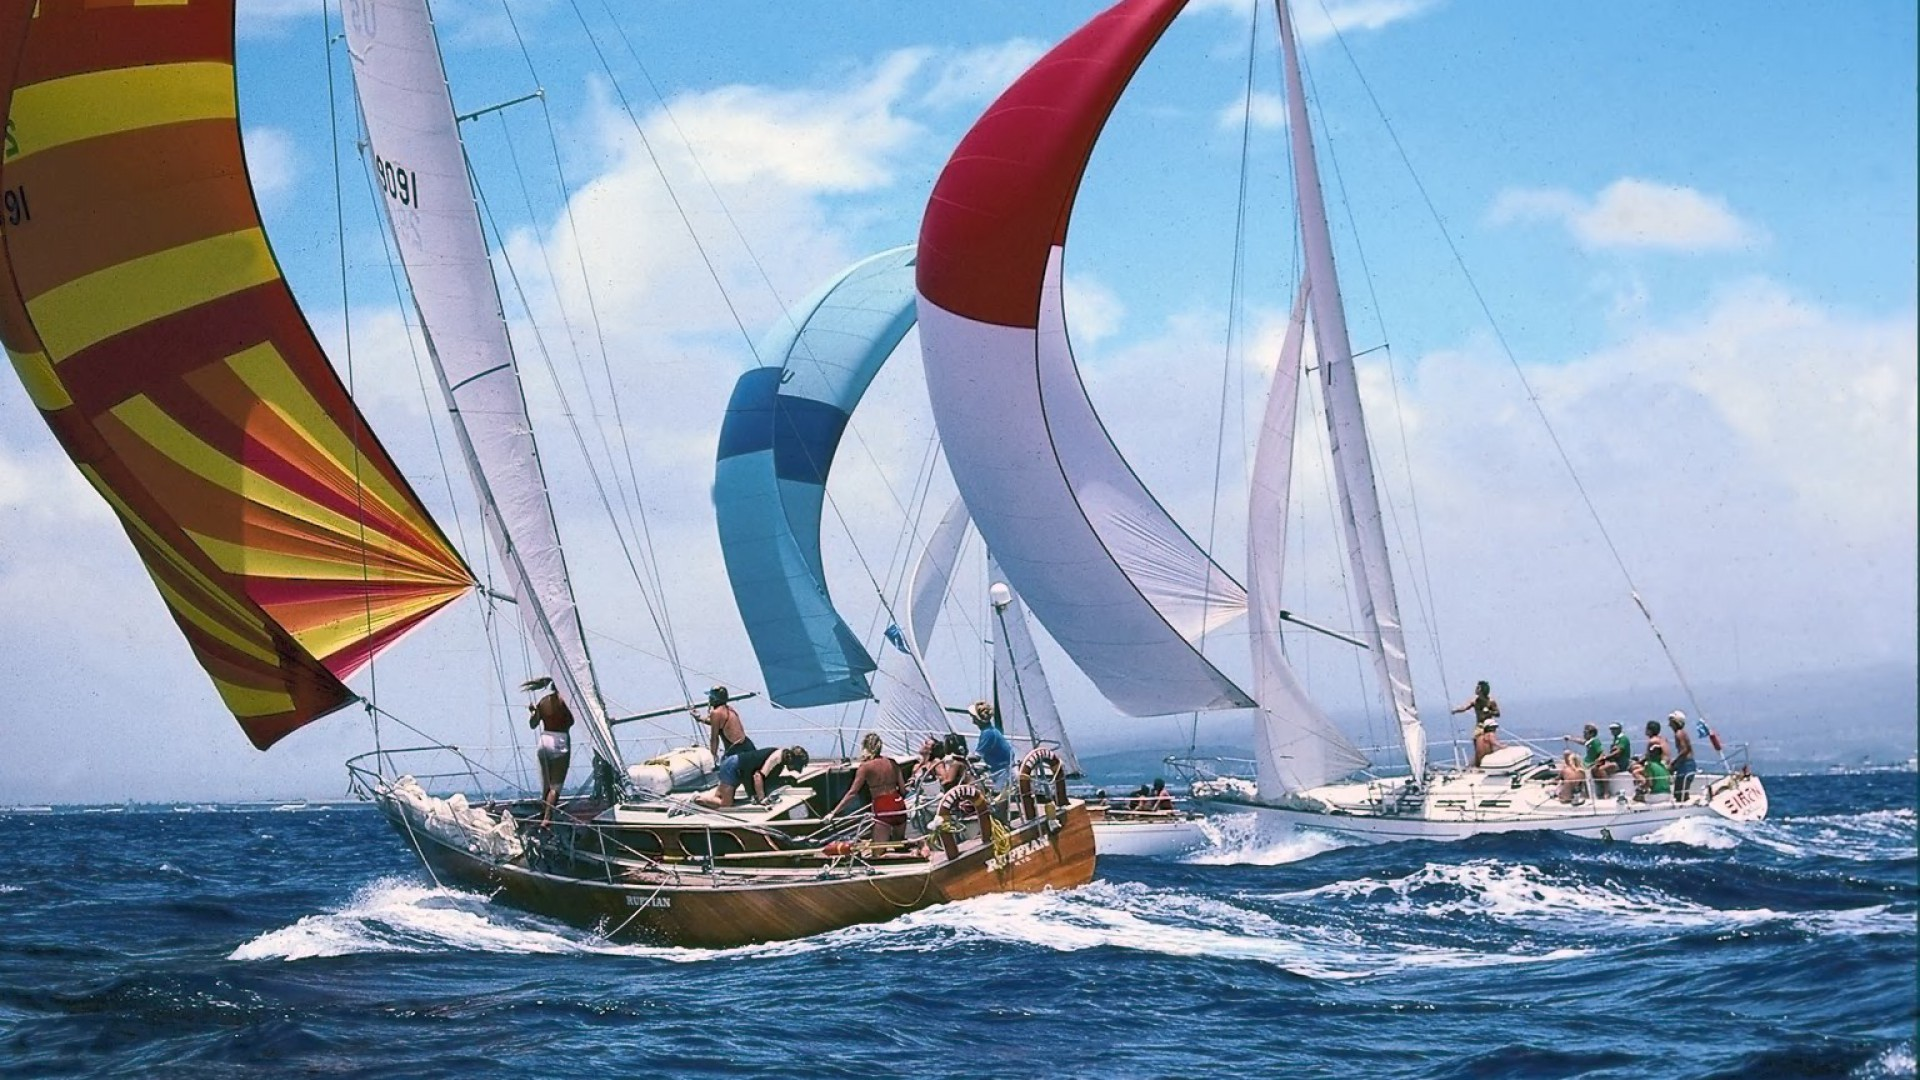 hungry for sailboat wallpaper - photo #49